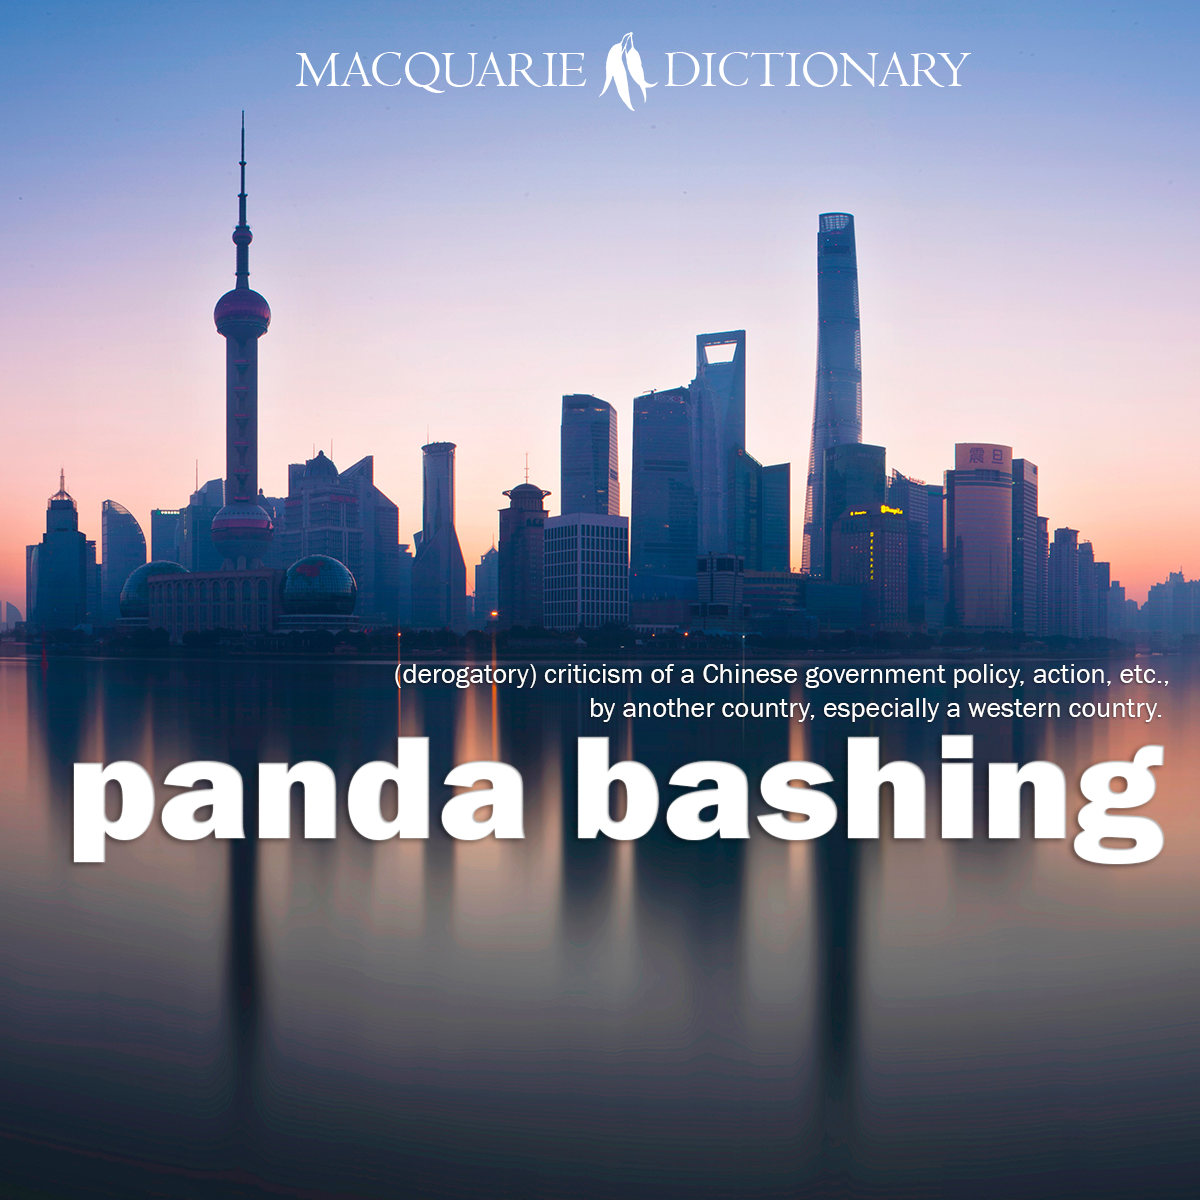 panda bashing - criticism of a Chinese government policy, action, etc., by another country, especially a western country.